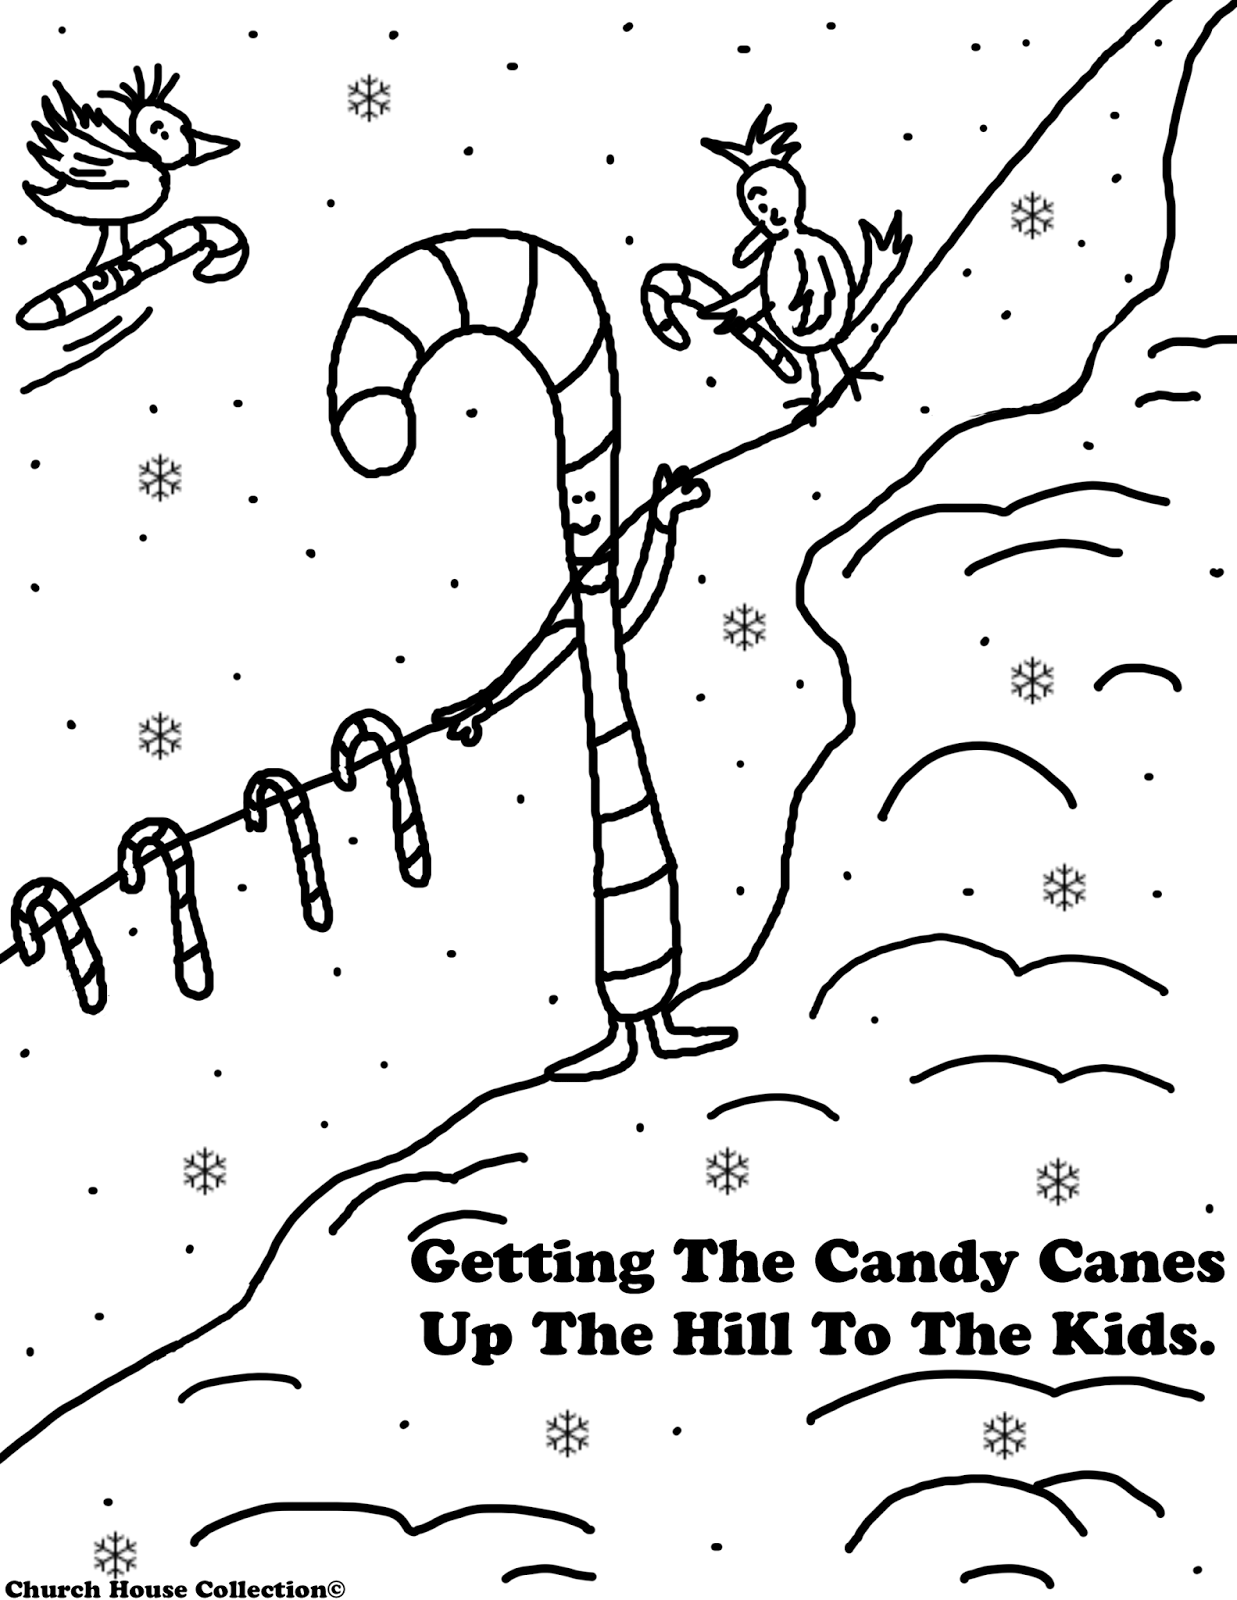 christmas coloring pages for childrens church | Church House Collection Blog: Free Christmas Candy Cane ...